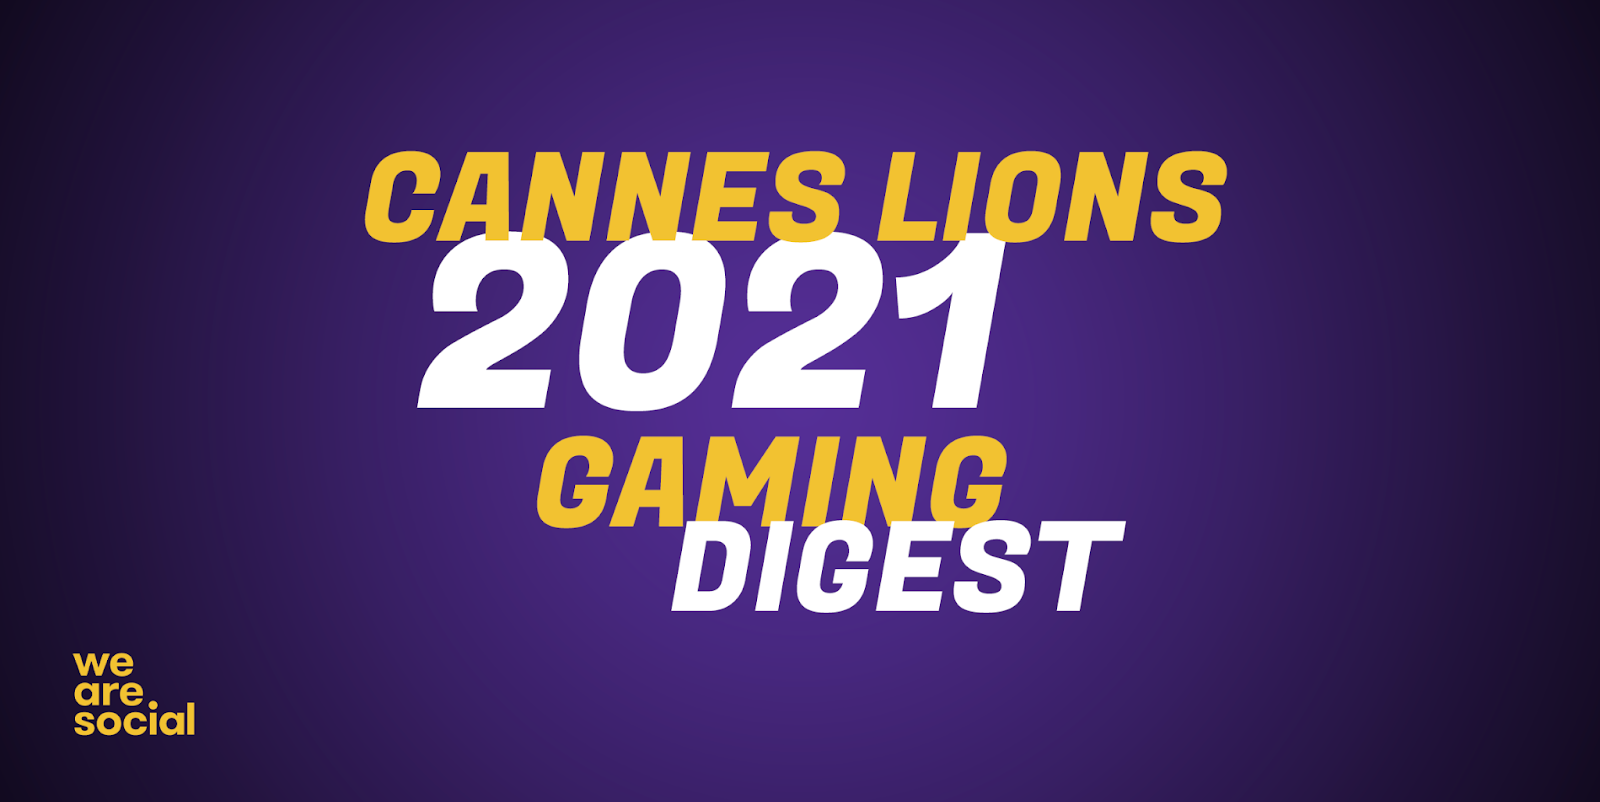 Cannes Lions 2021 Gaming Digest